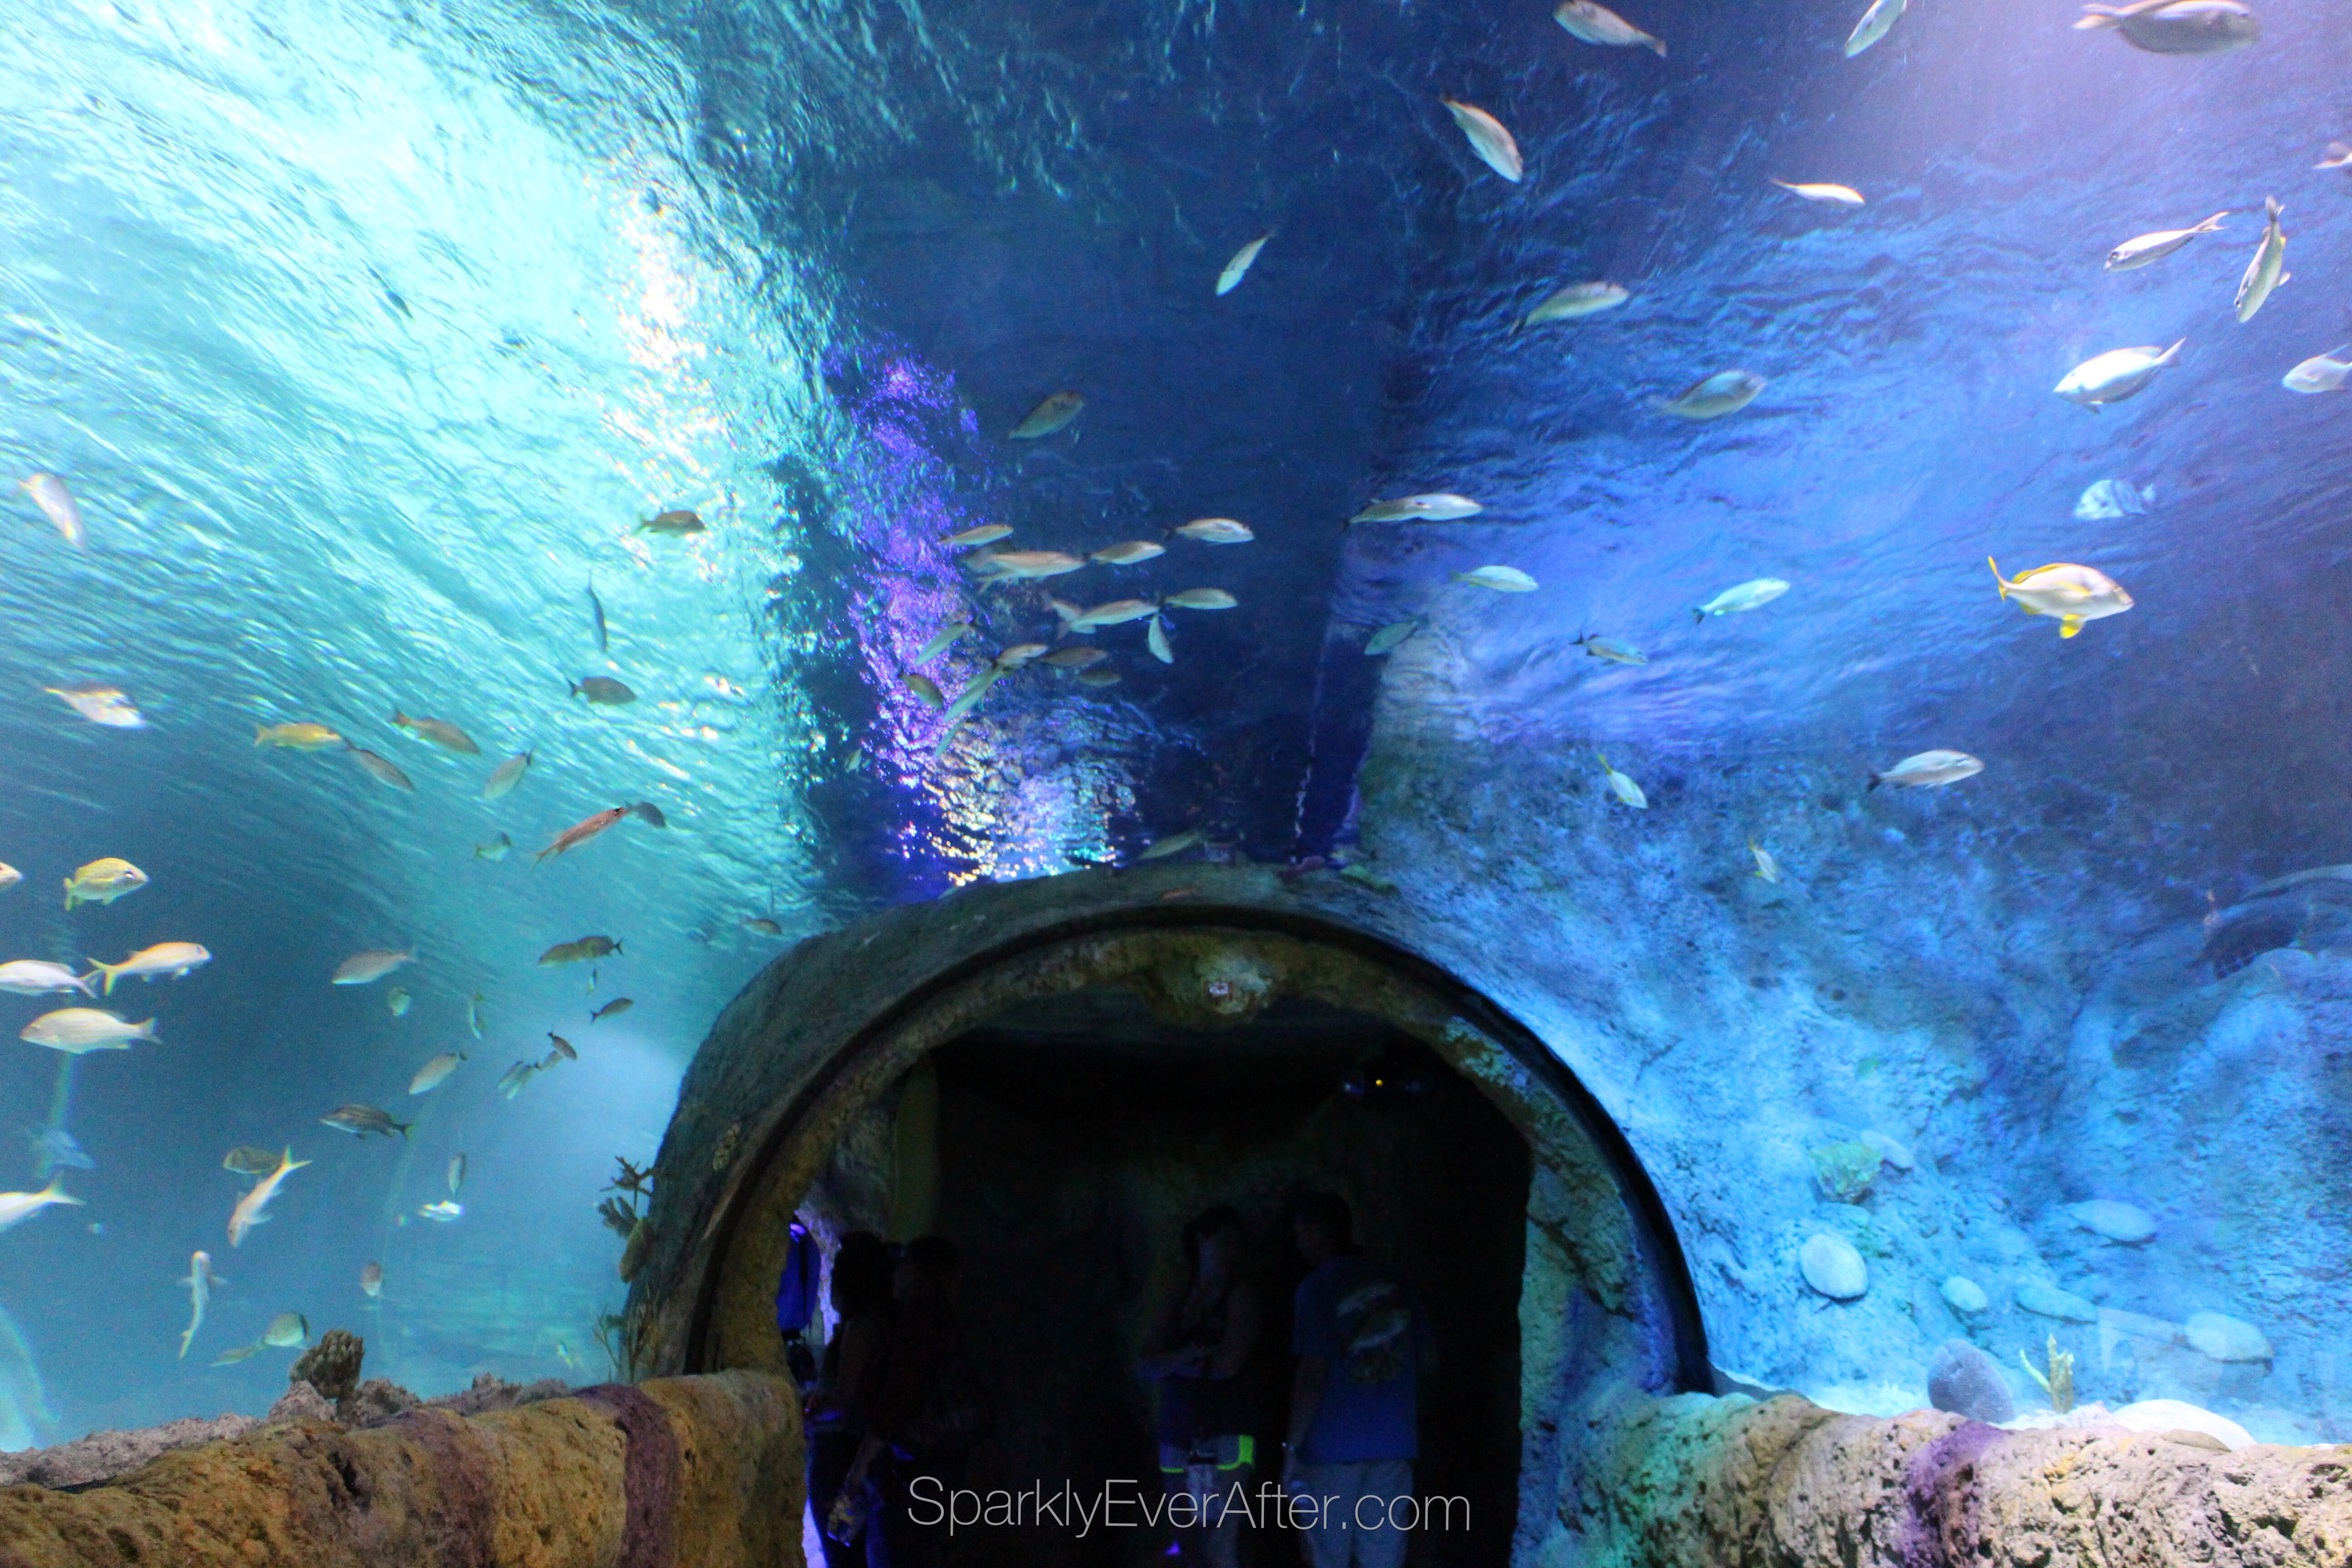 Sea Life Orlando Aquarium Review